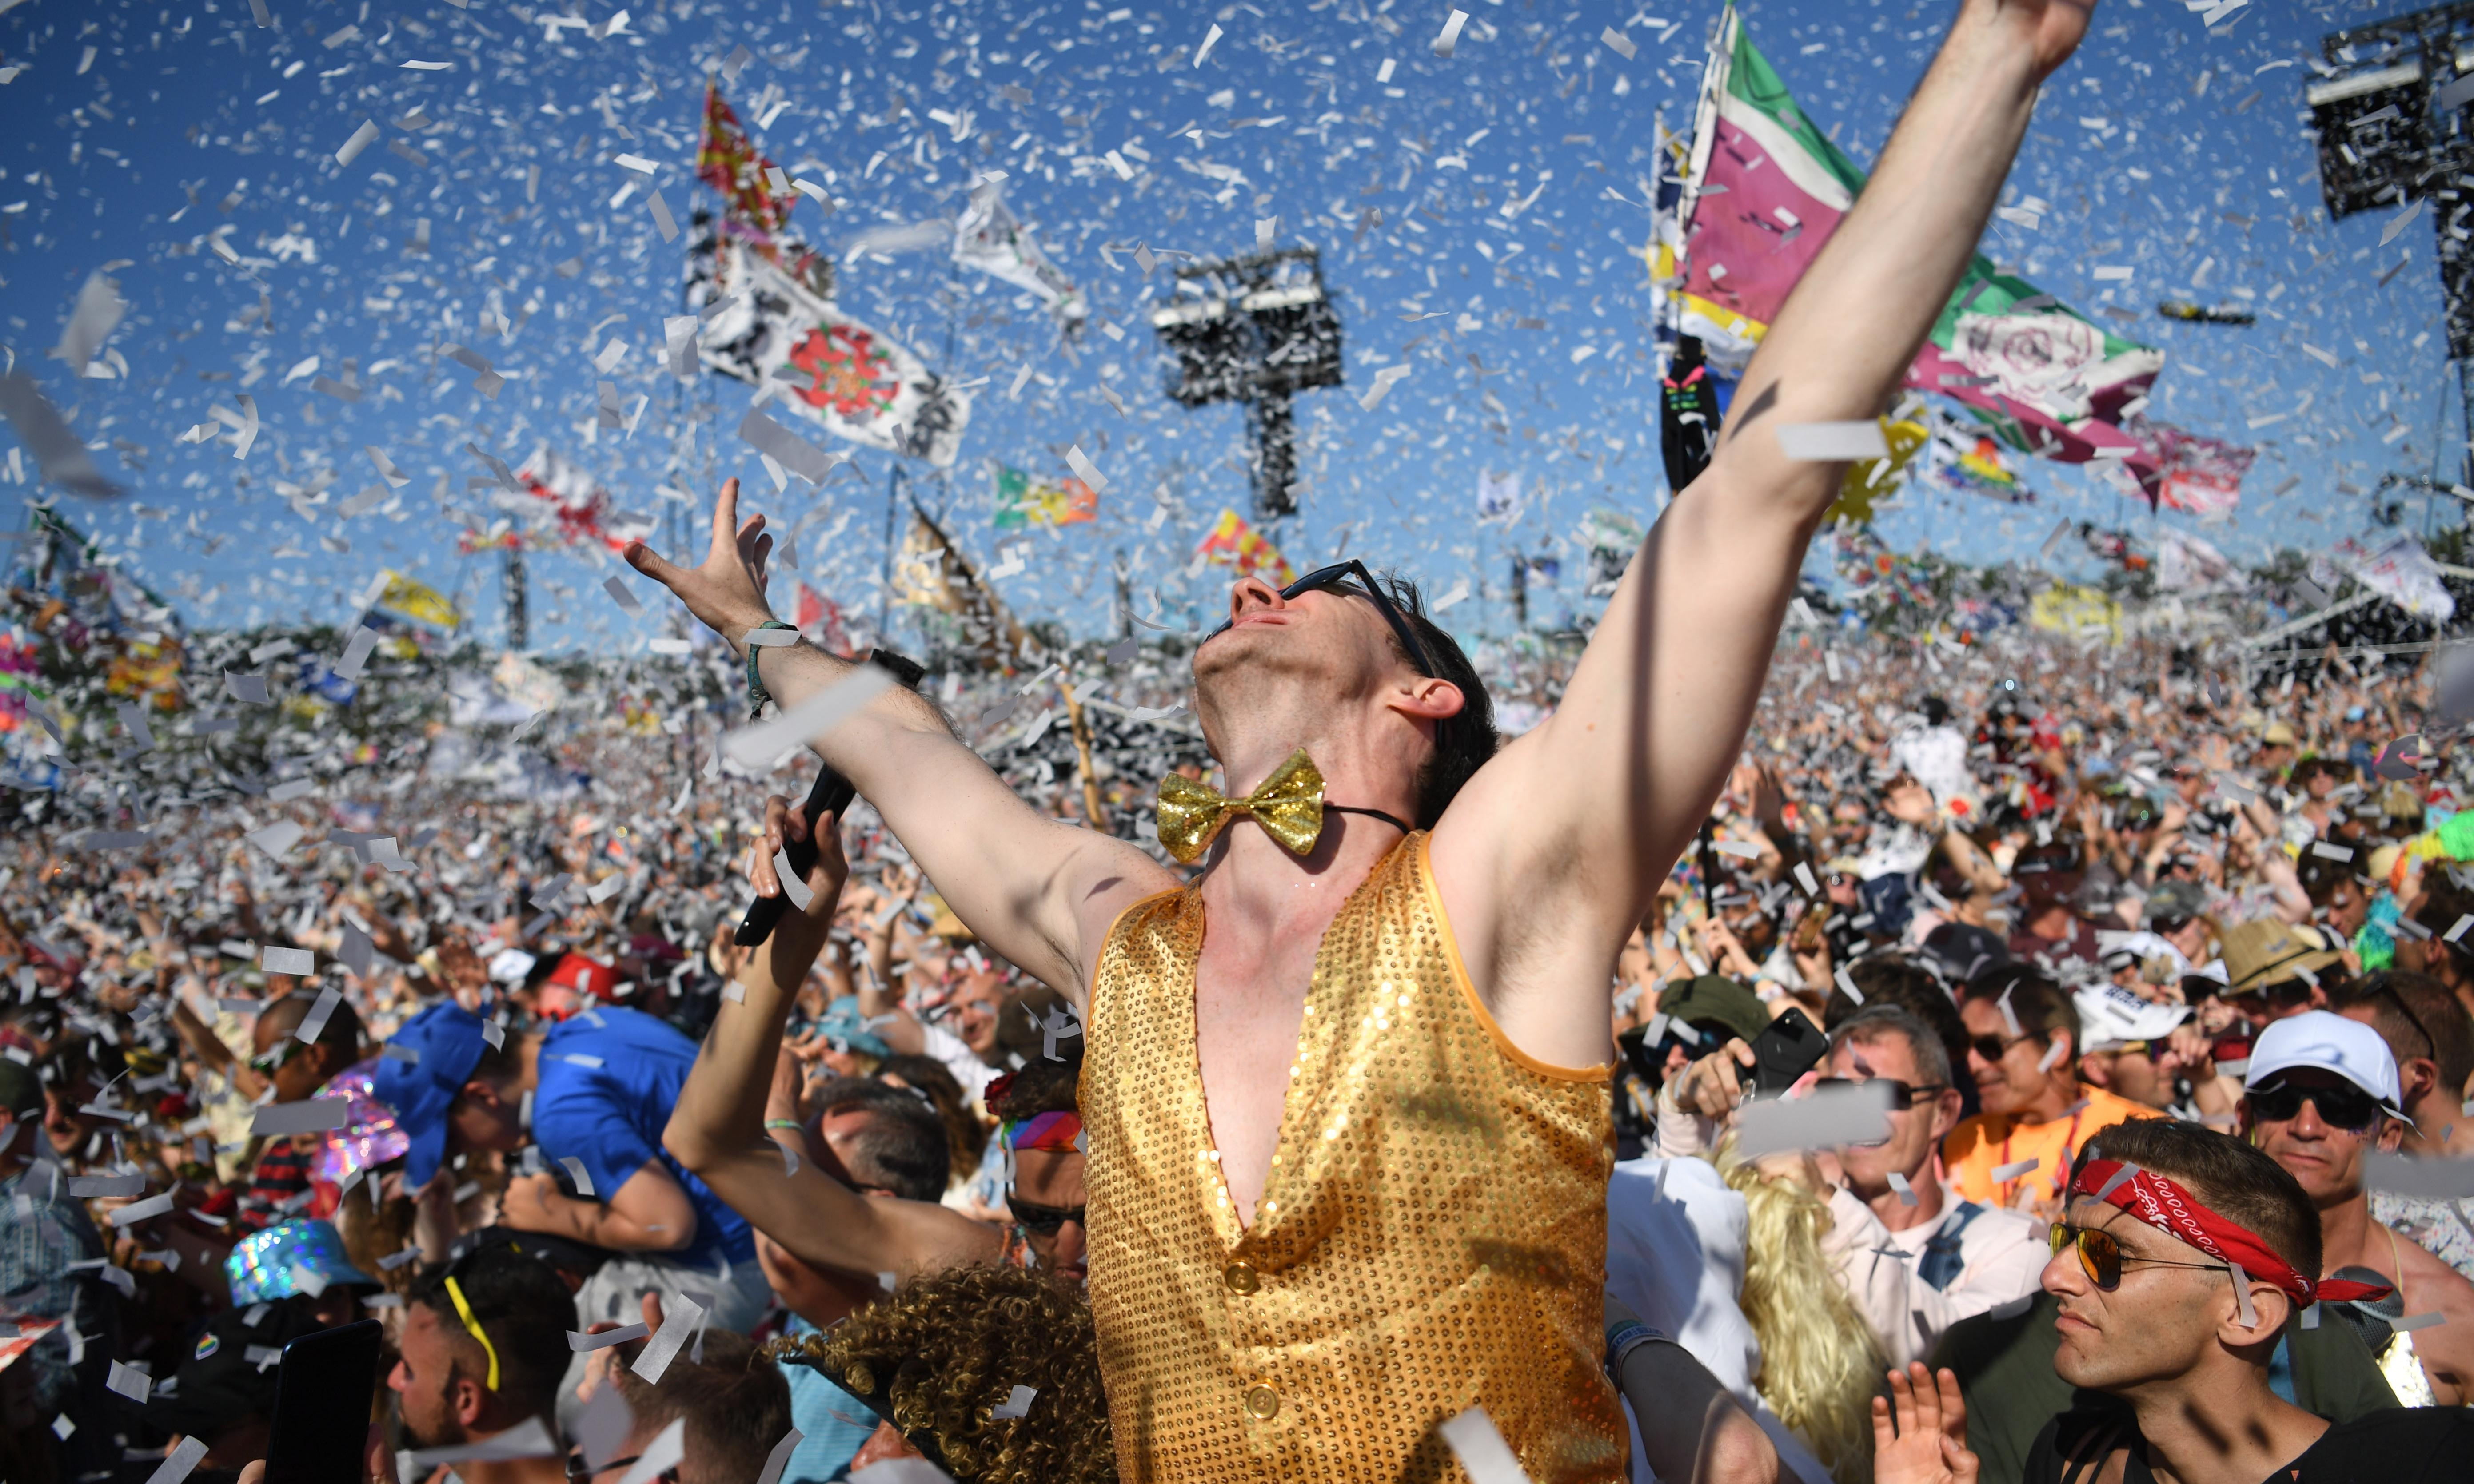 Tell us: what was your favourite moment from Glastonbury 2019?